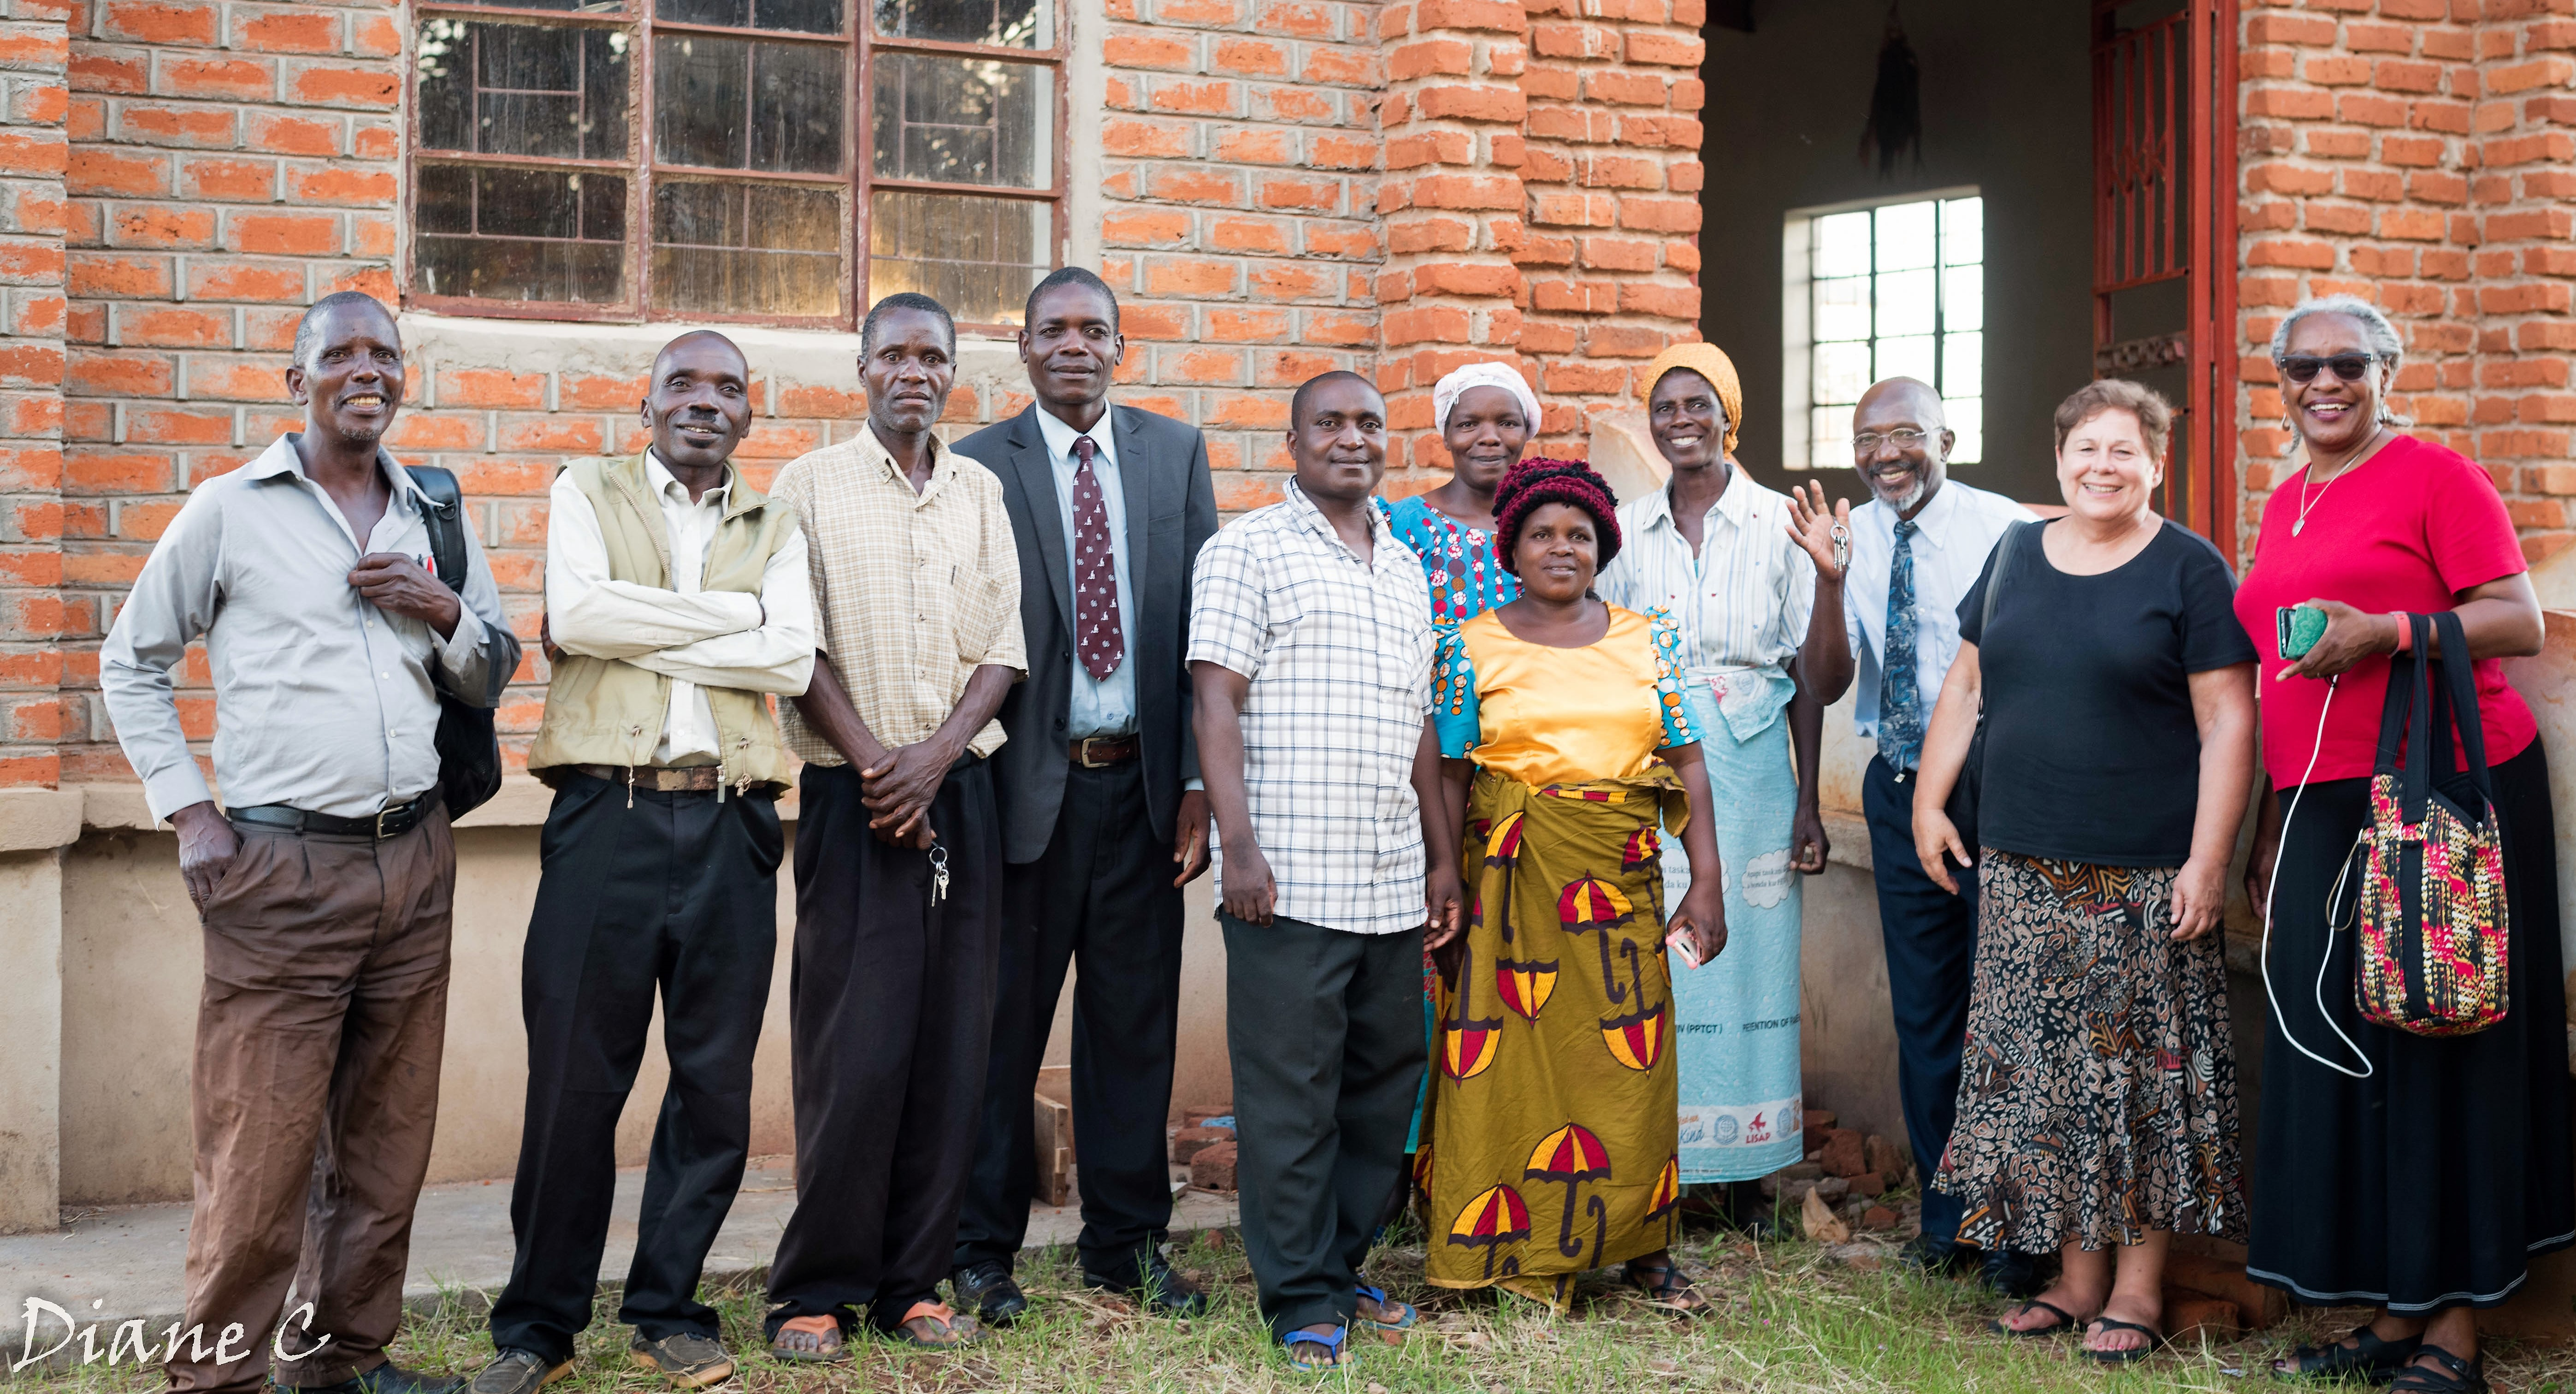 With Rev. and Mrs. M. Msiska (5th and 6th from left) and session members of CCAP Livingstonia Vibangalala Congregation, Loudon Presbytery, northern Malawi.